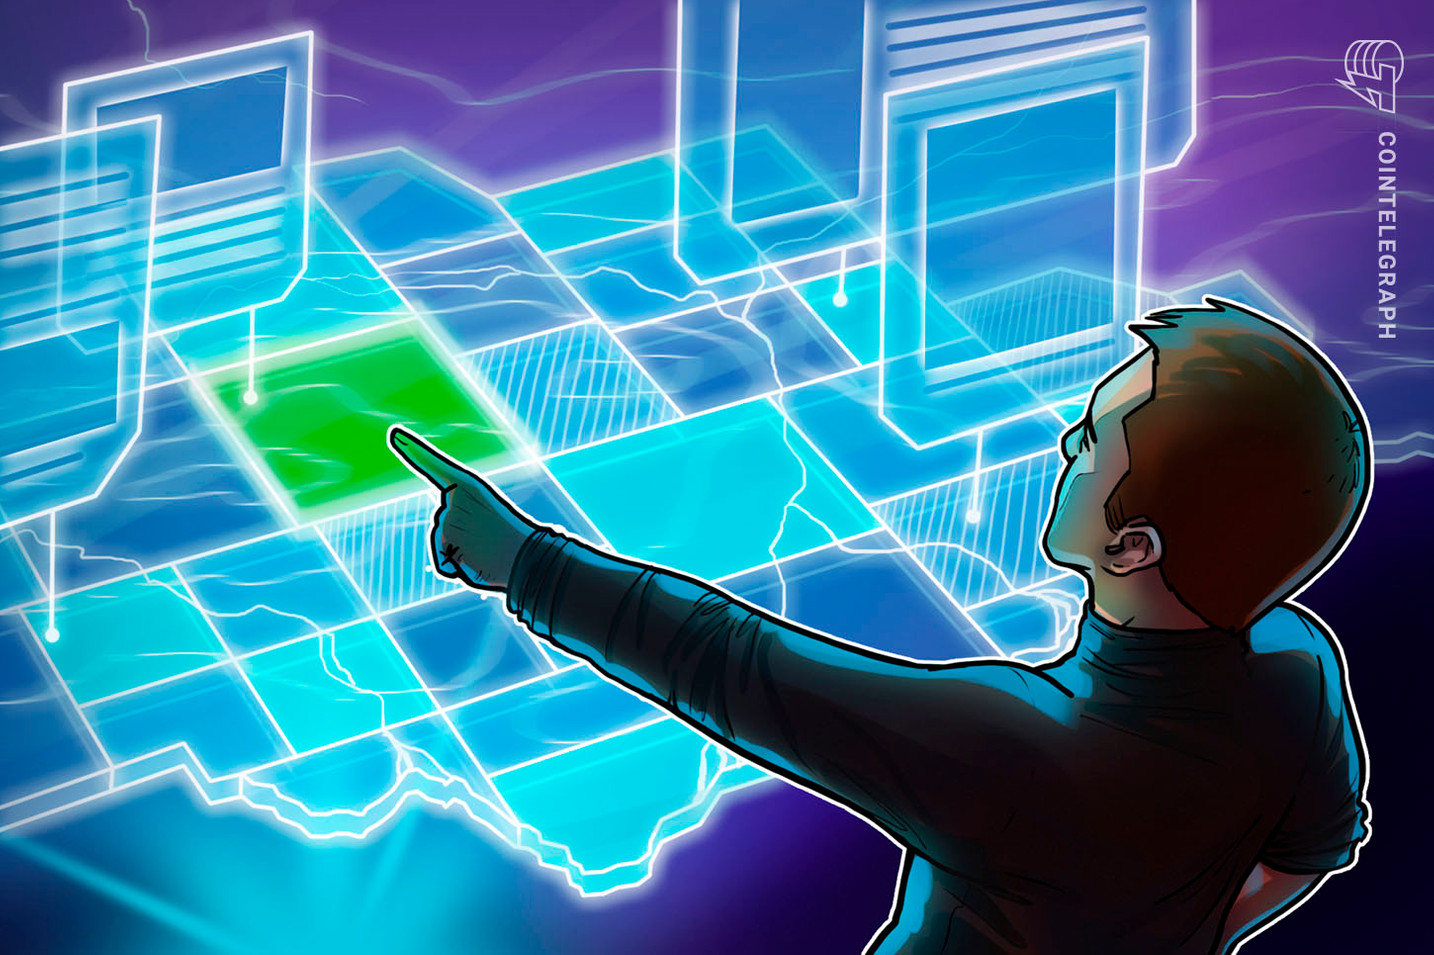 Blockchain may solve Twitter and Facebook's moderation issues says Aragon exec